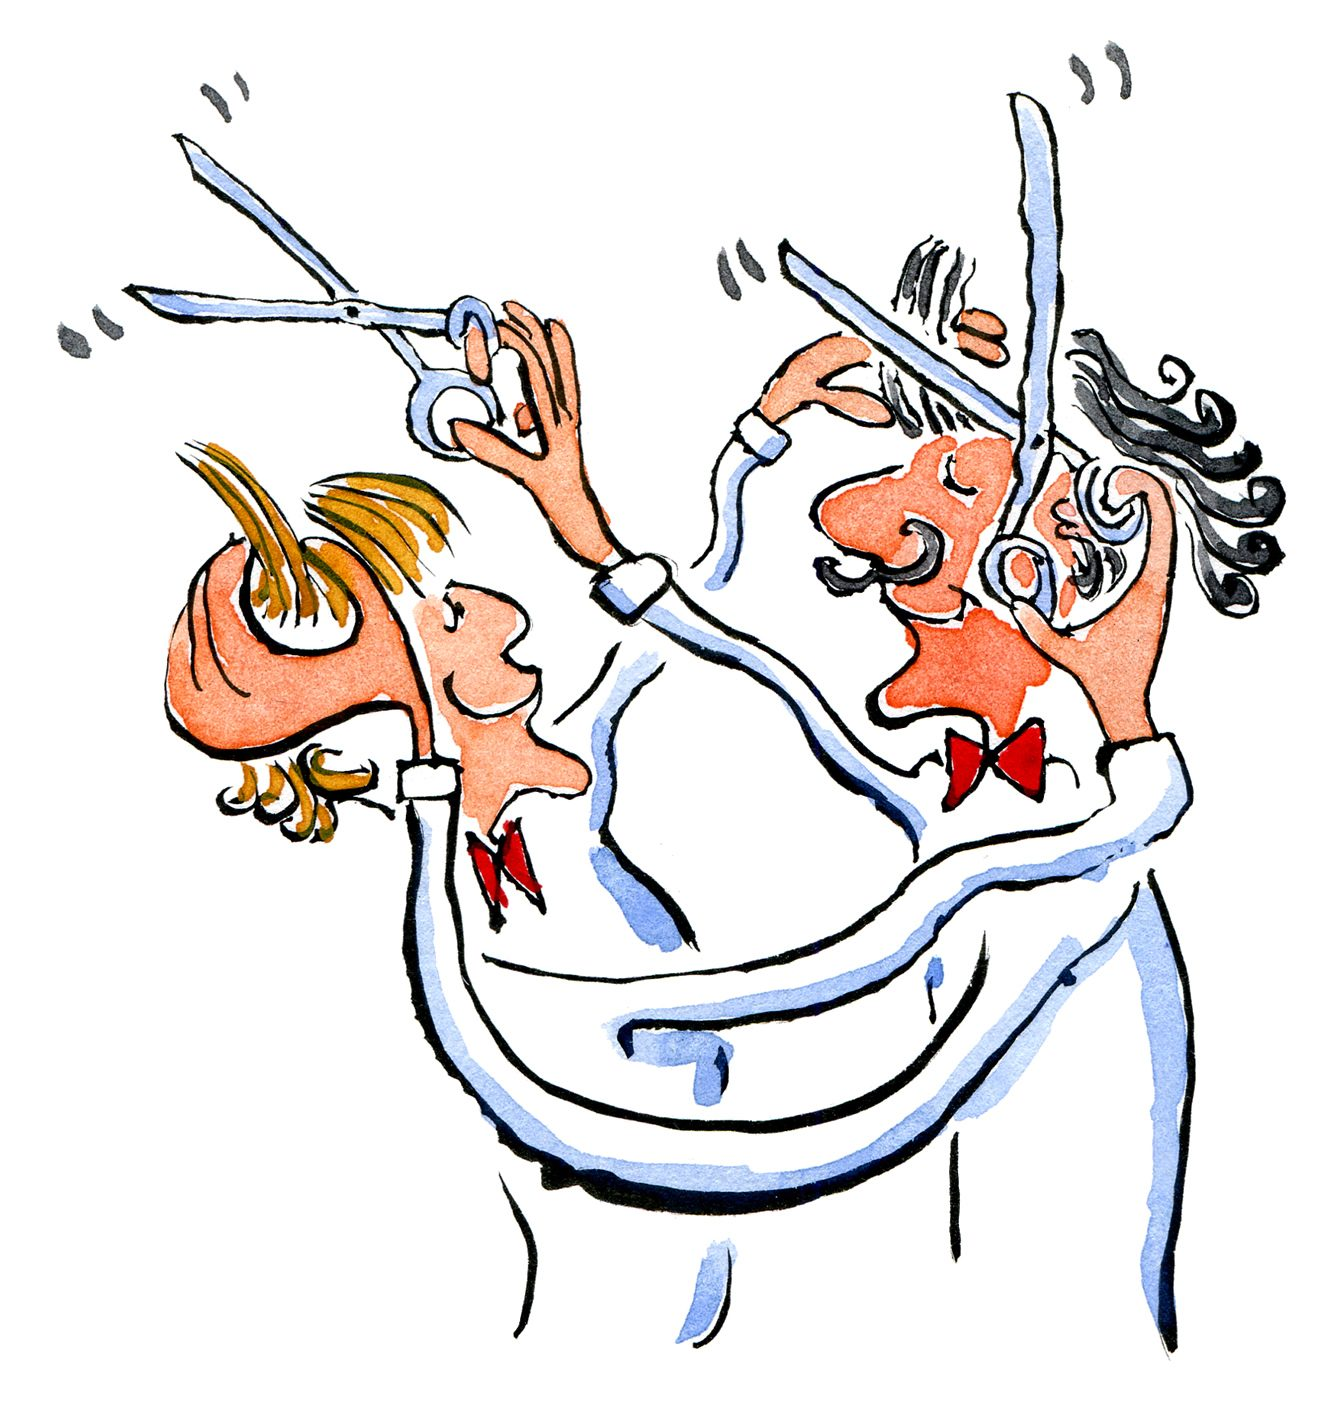 Drawing of two haircutters cutting each others hair, watercolor and ink